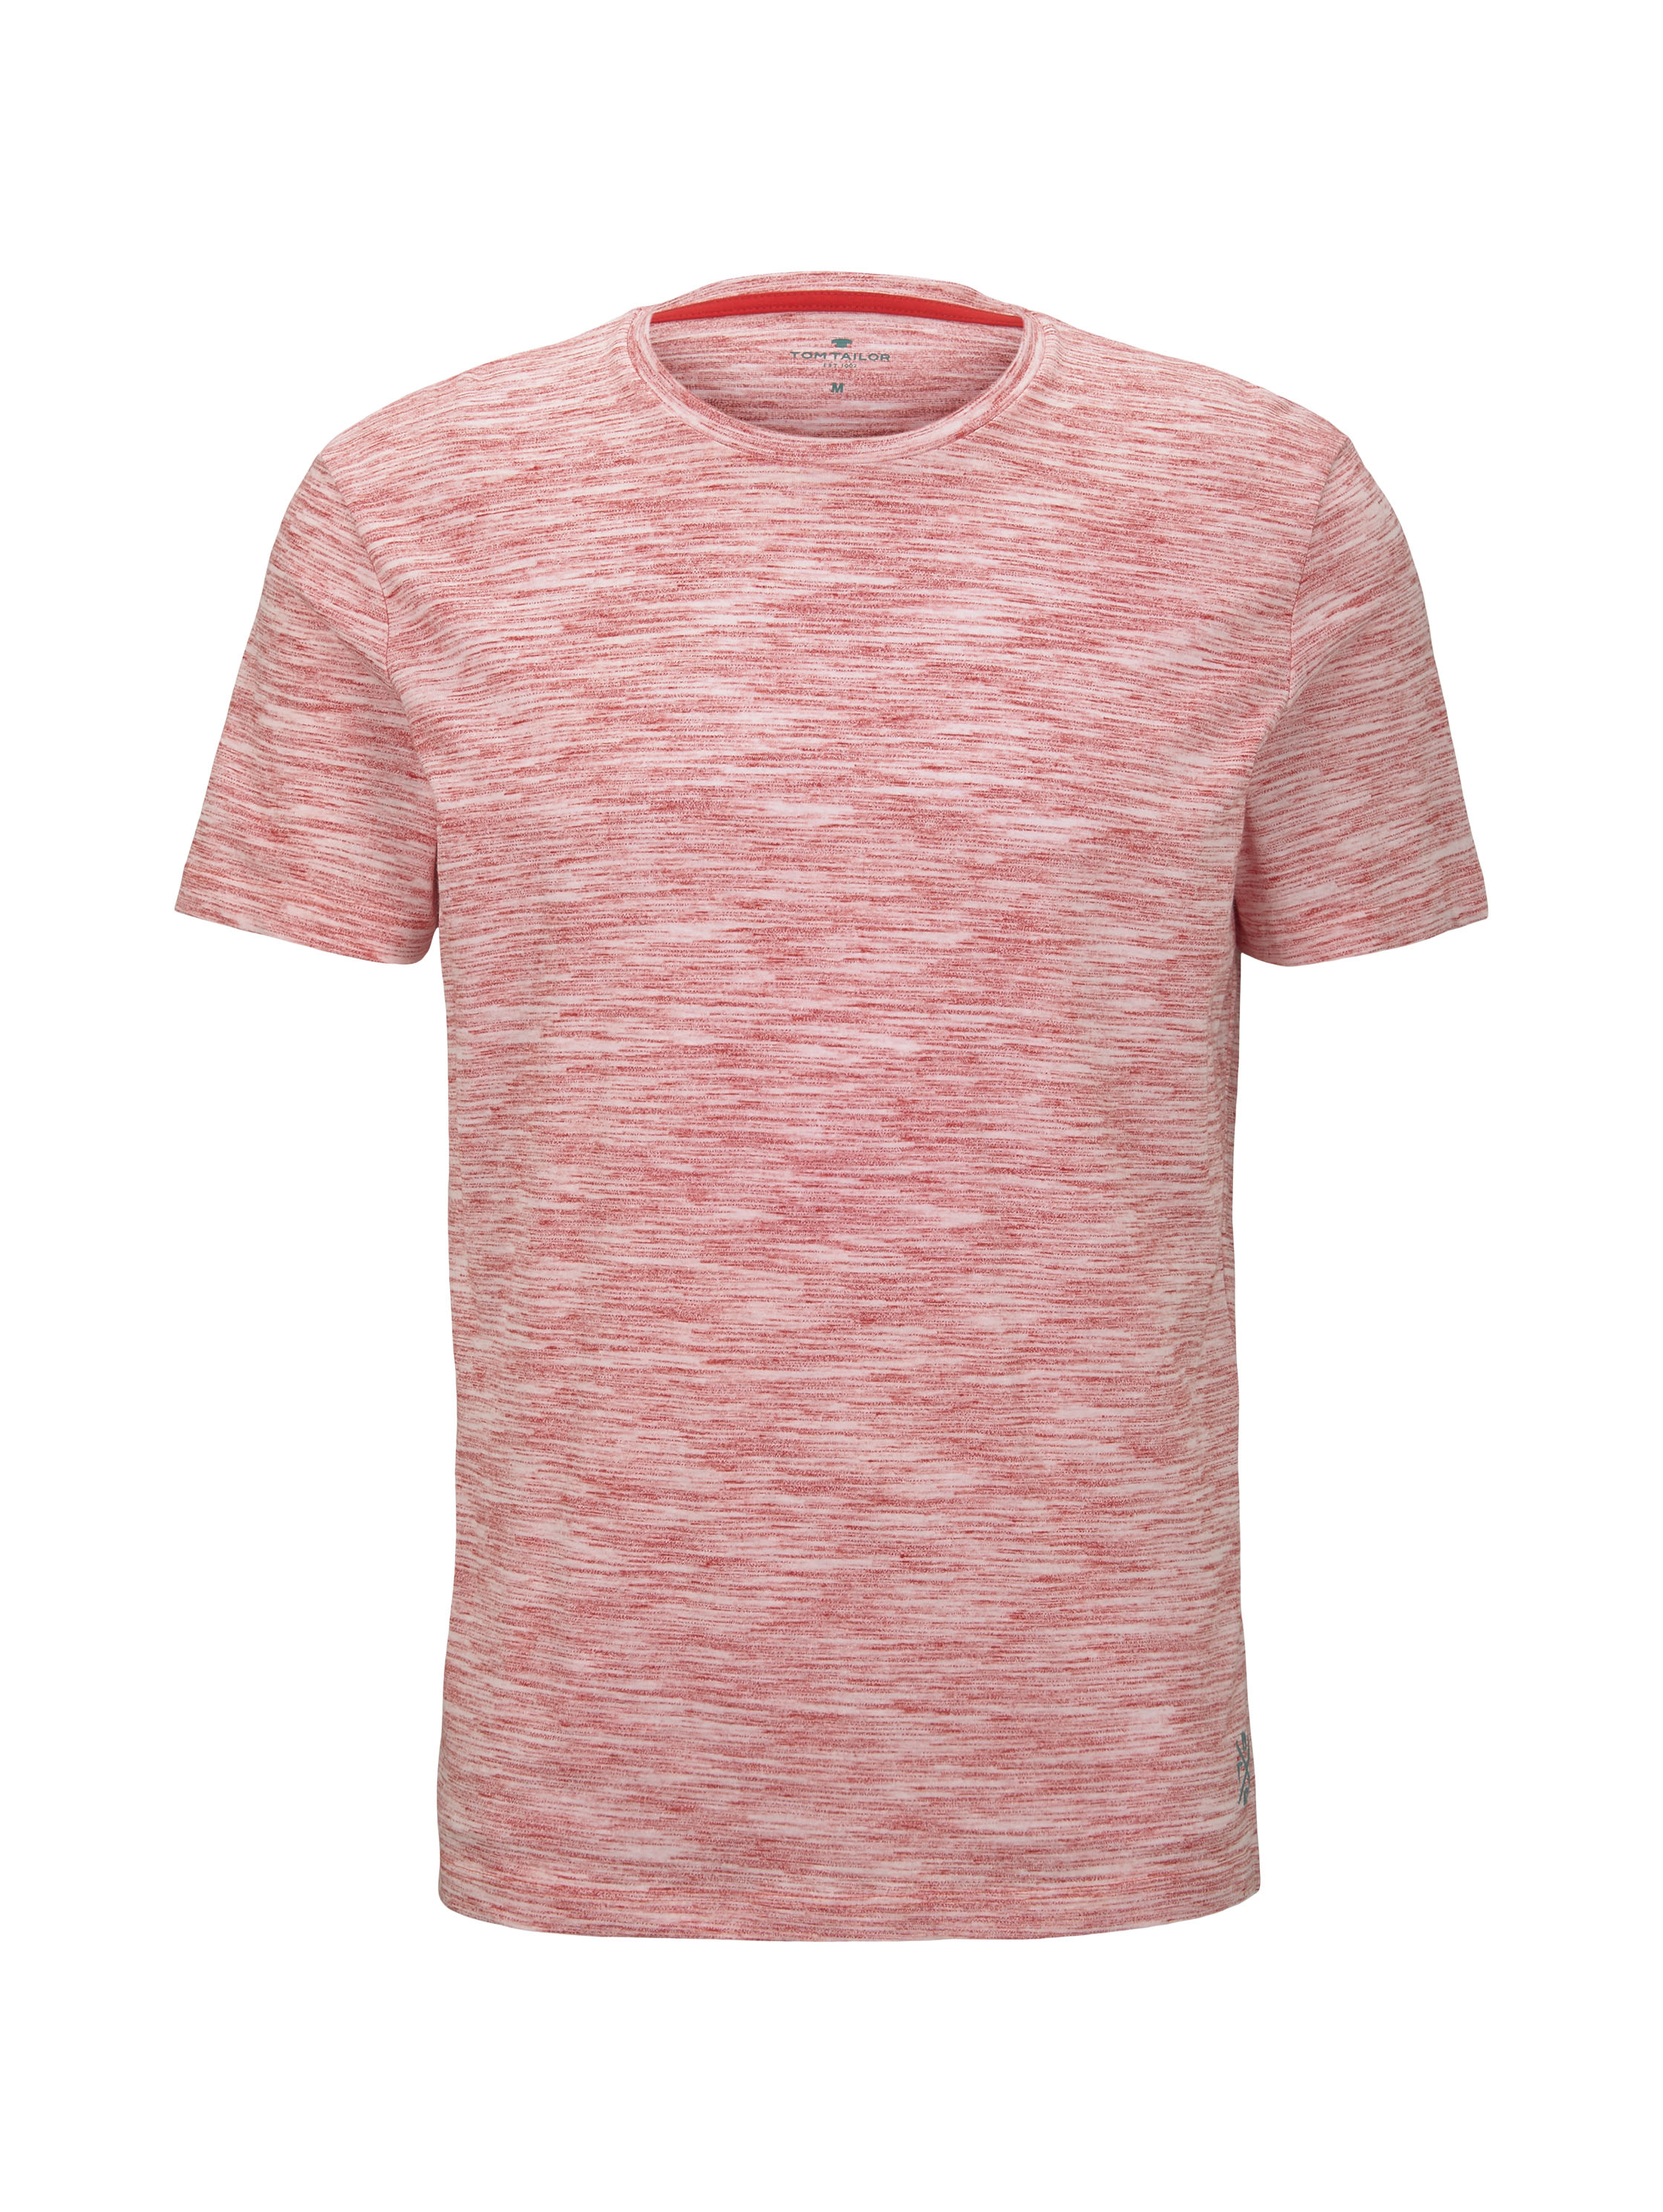 basic two-tone t-shirt, red offwhite streaky inject